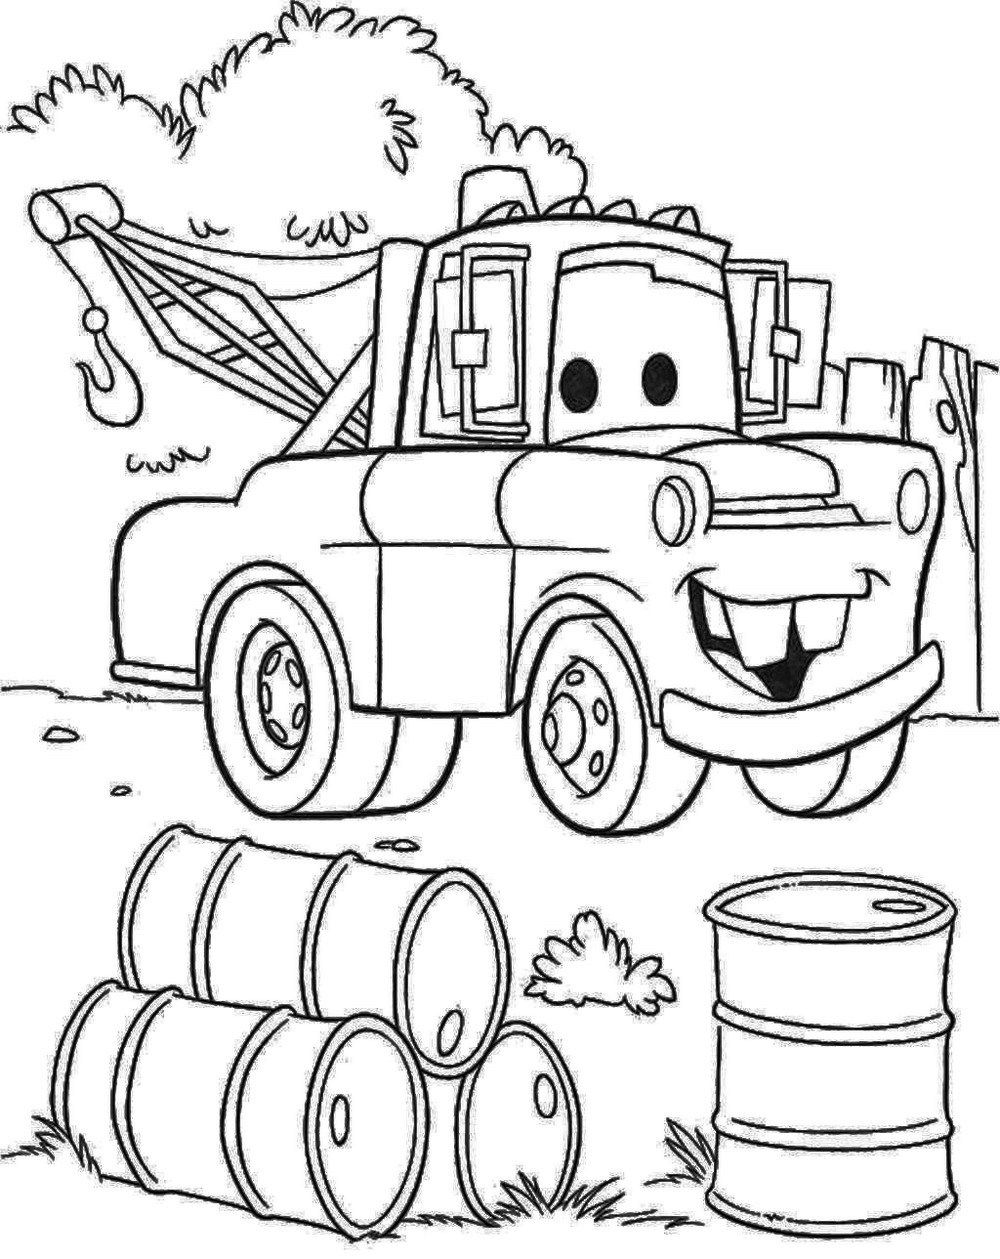 Mater Colouring Pages To Print | Disney Coloring Pages | Pinterest